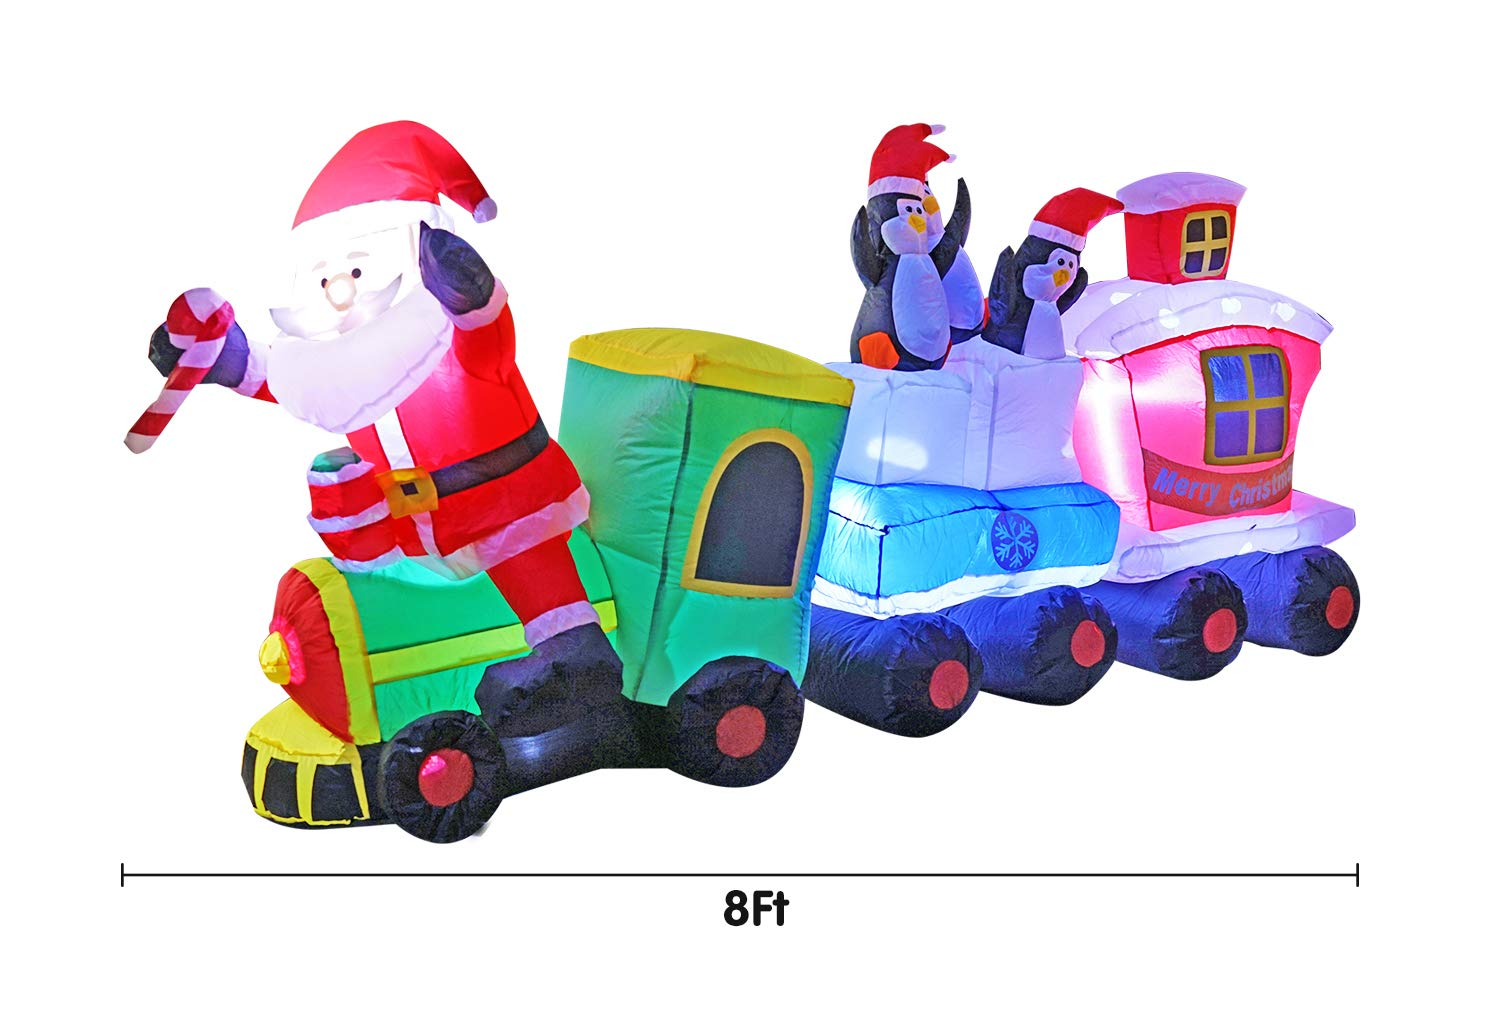 SEASONBLOW 8 Ft Inflatables Christmas Train with Santa Claus,Penguin Decorations Inflatable for Indoors Outdoors Yad Home Garden Lawn